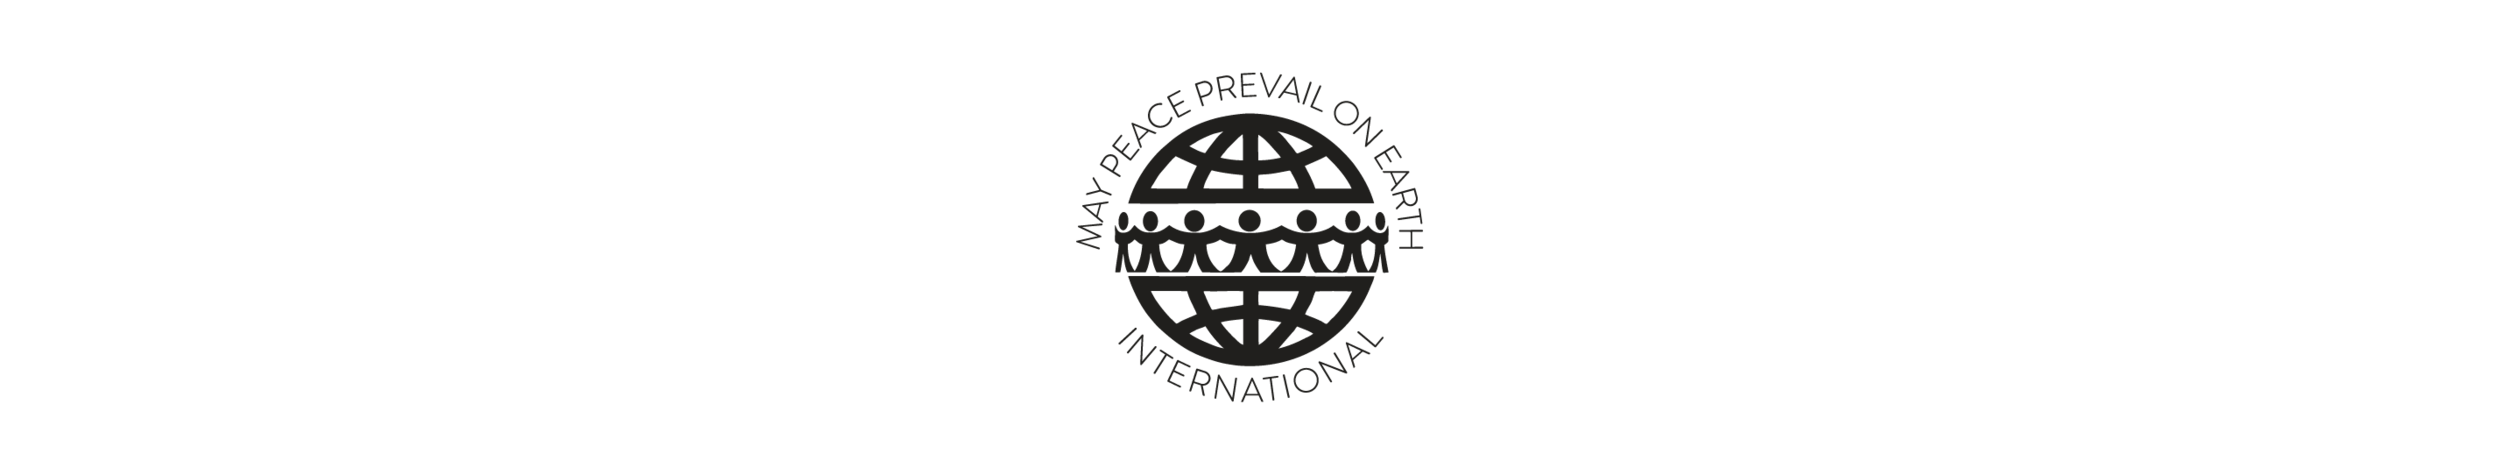 May Peace Prevail On Earth International.png